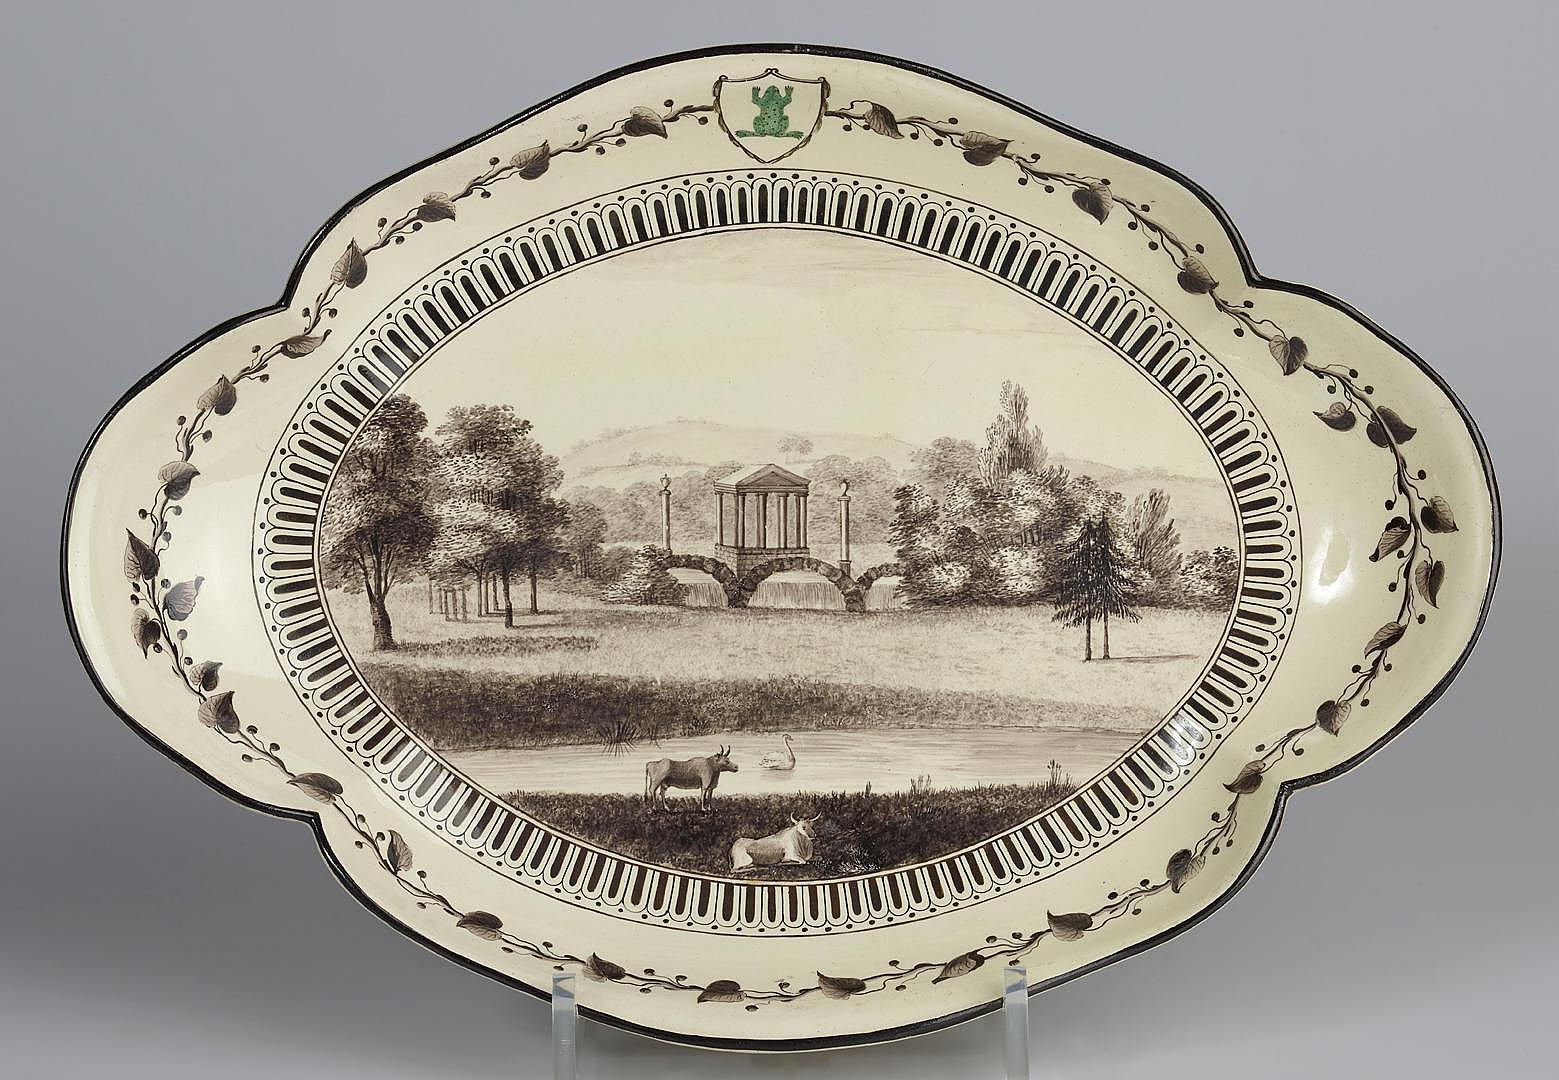 Oval dish, United Kingdom, earthenware